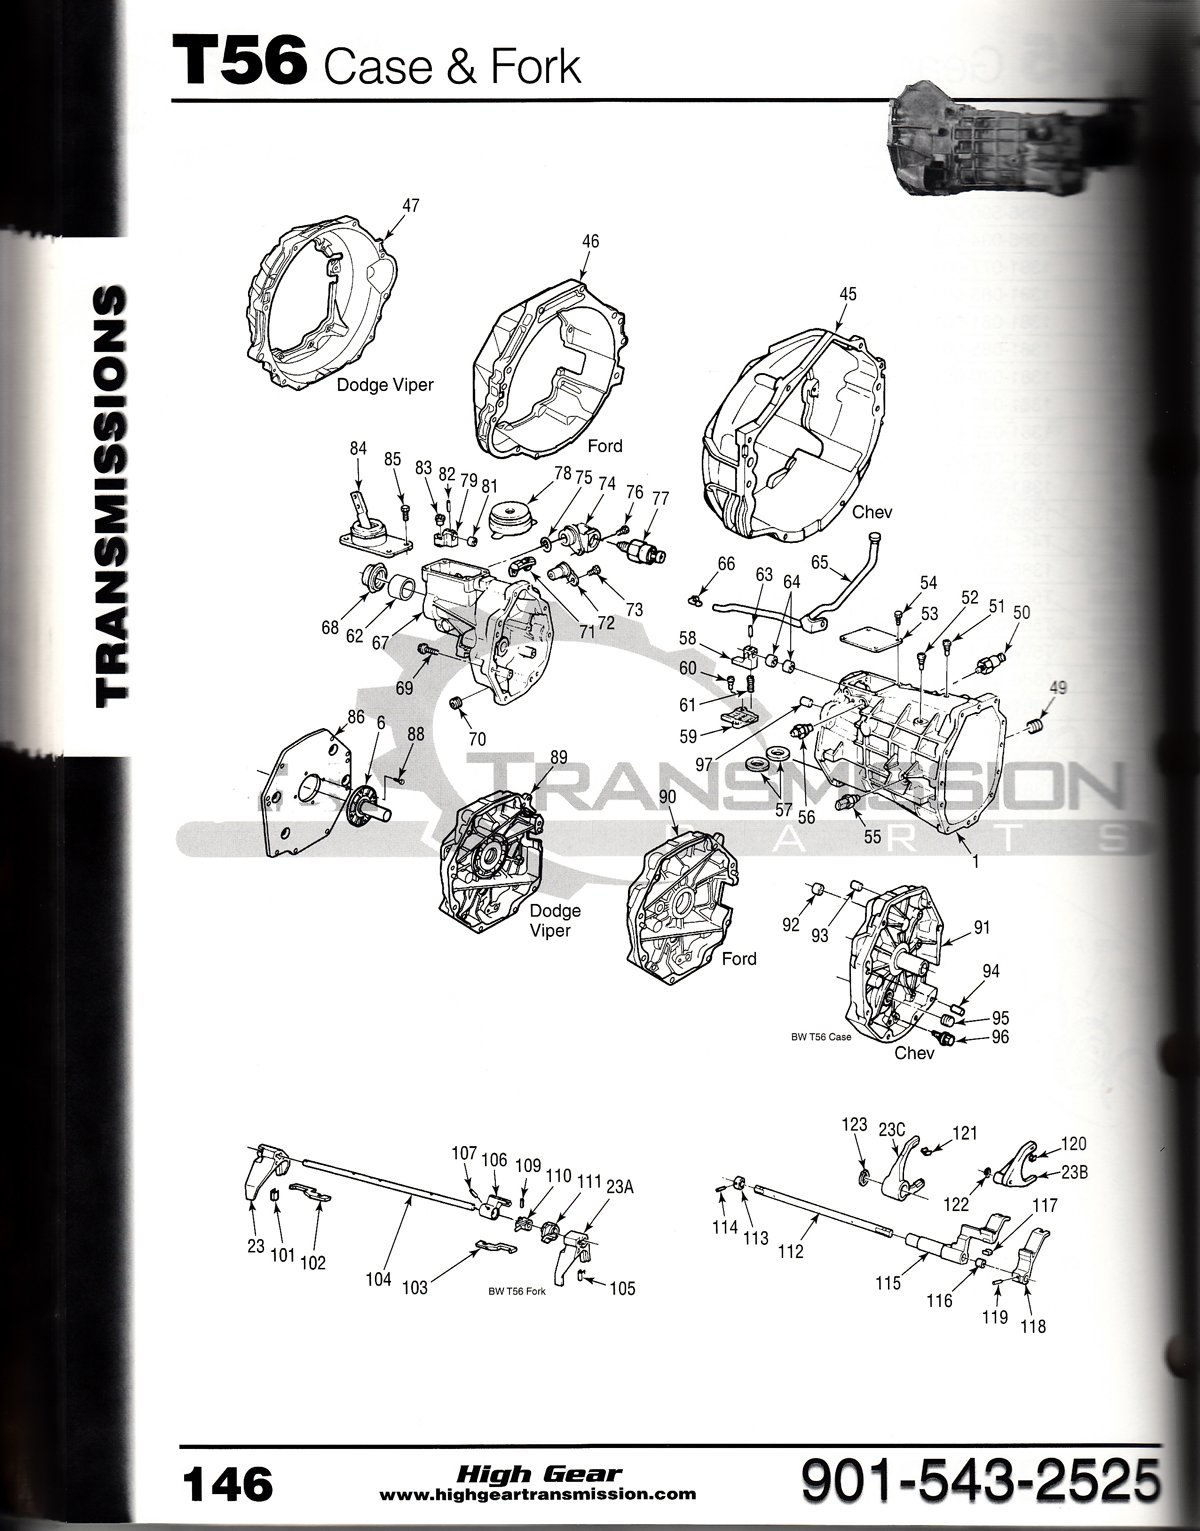 T56 Wiring Diagram Detailed Schematics Powerglide Transmission Shift Fork Reinvent Your Lt1 Engine